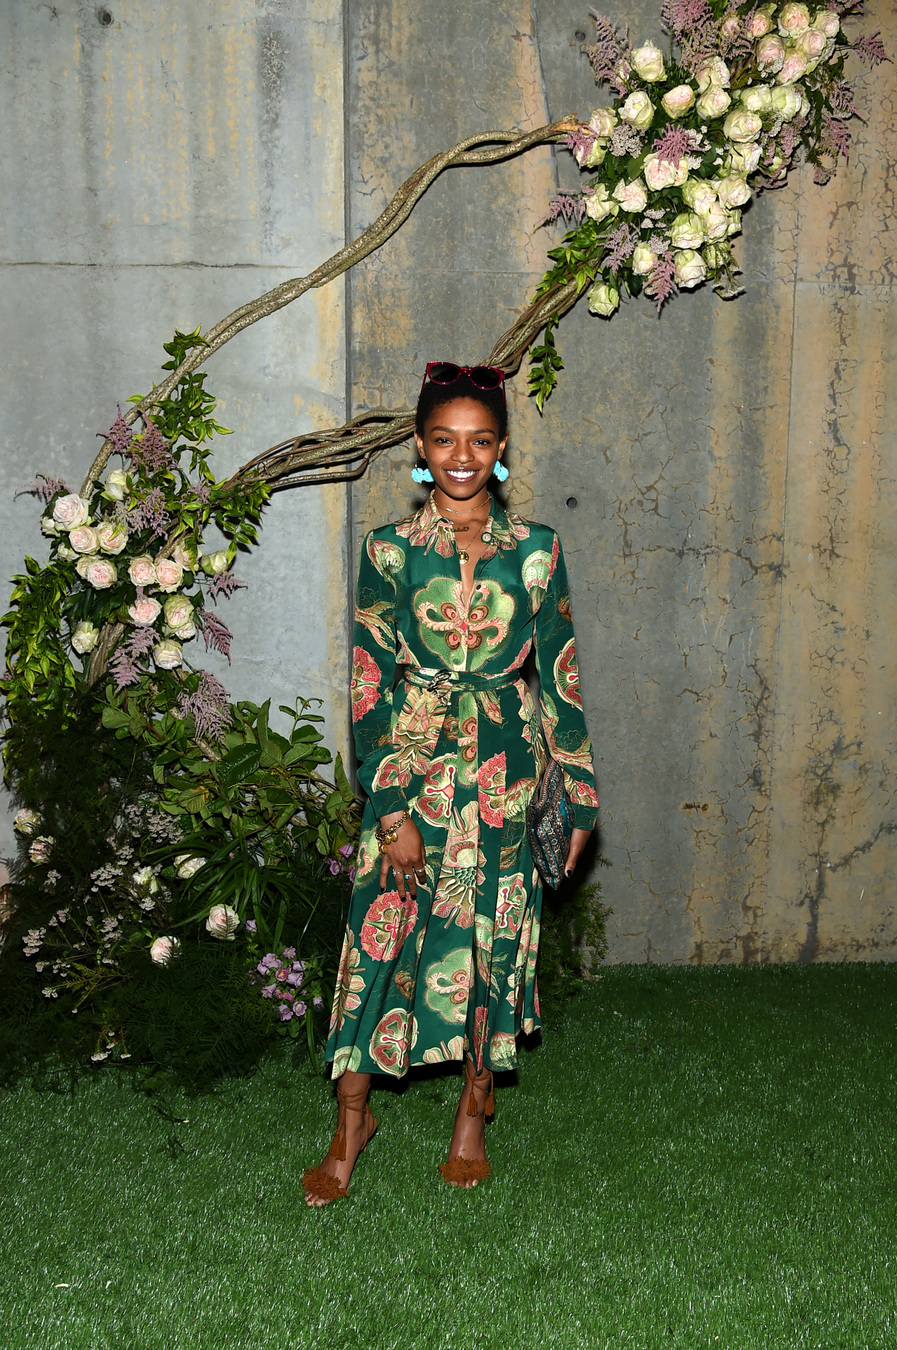 NEW YORK, NY - MAY 02: Selah Marley attends the Gucci Bloom Fragrance Launch at MoMA PS.1 on May 2, 2017 in New York City. (Photo by Jamie McCarthy/Getty Images for Gucci)